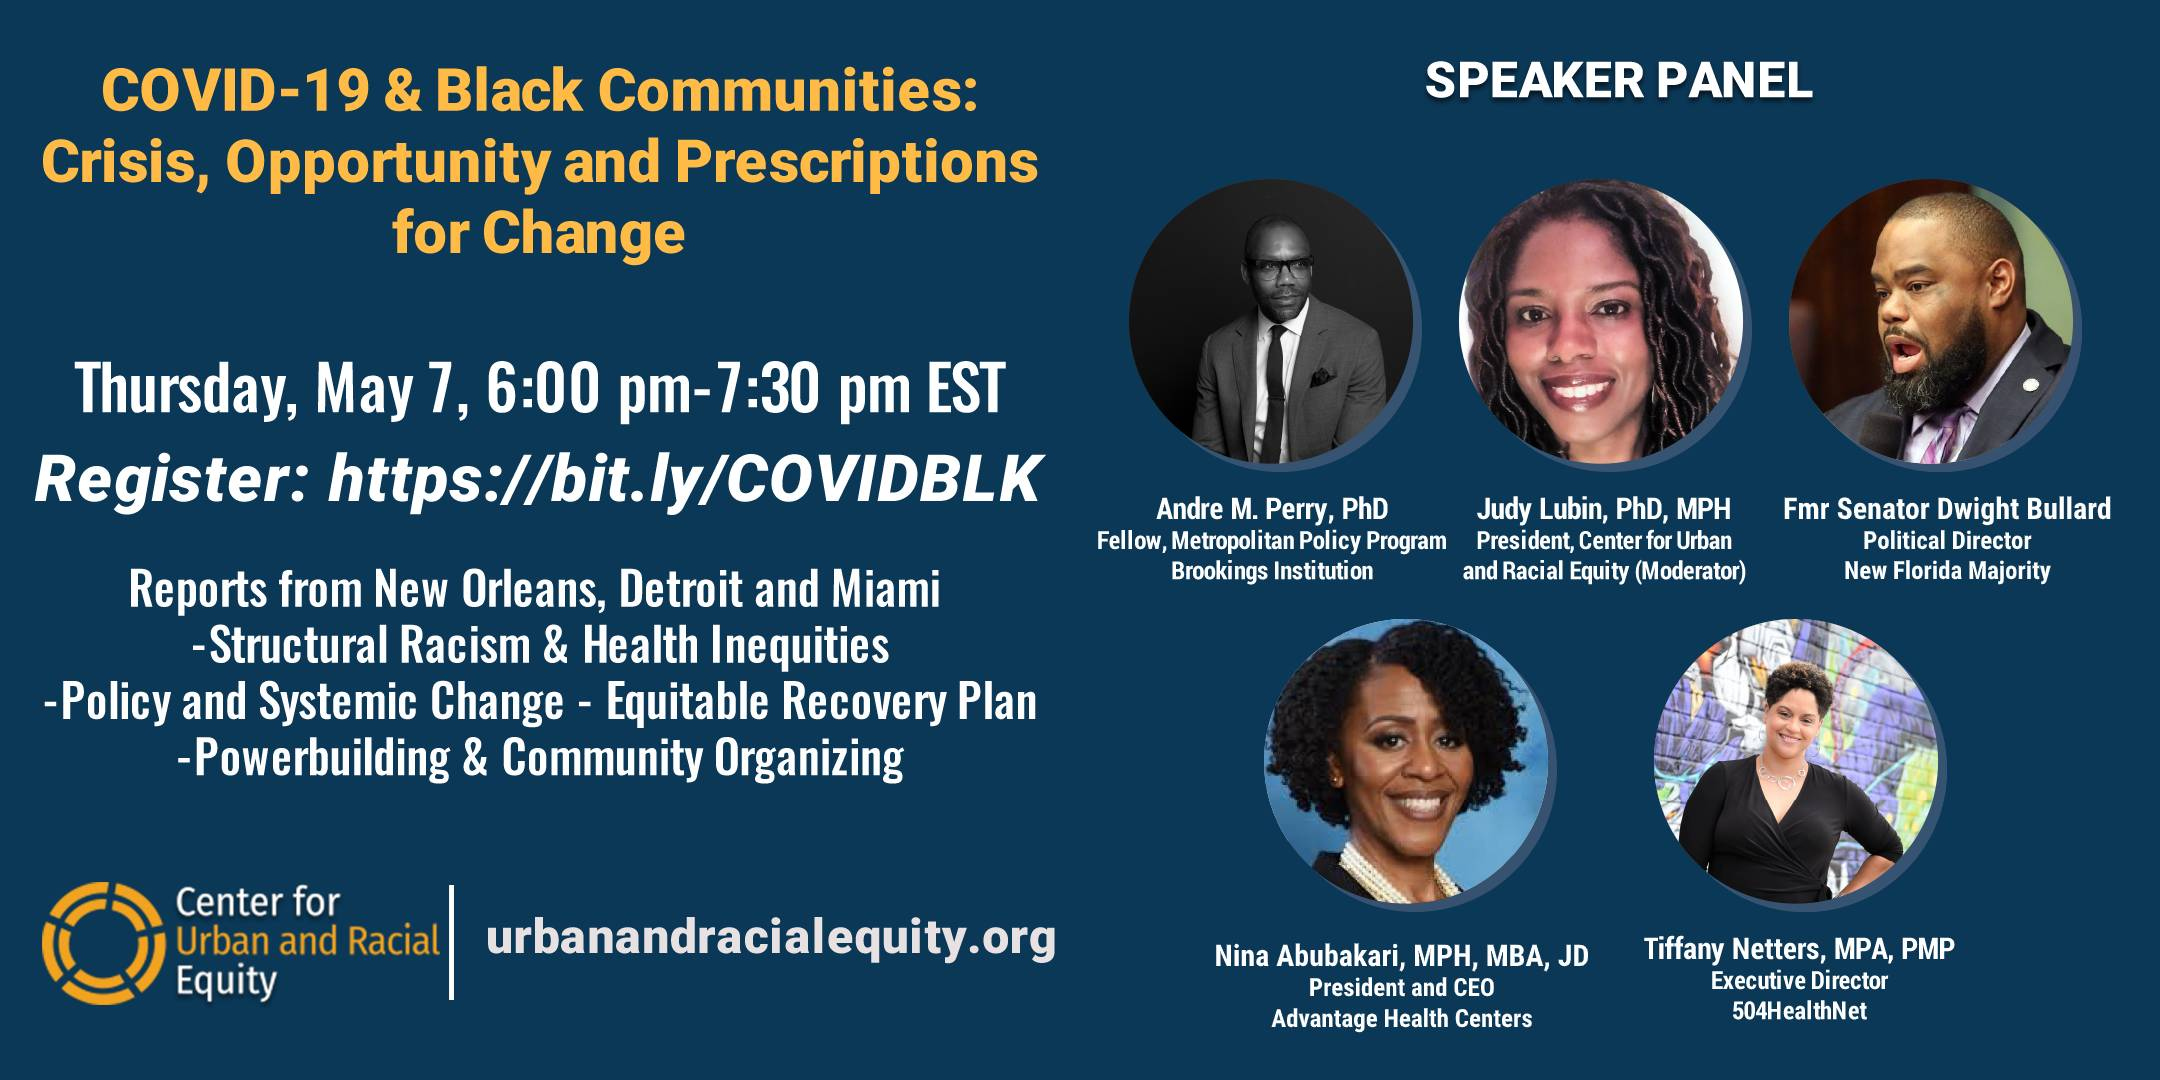 COVID-19 & Black Communities: Crisis, Opportunity and Prescriptions for Change